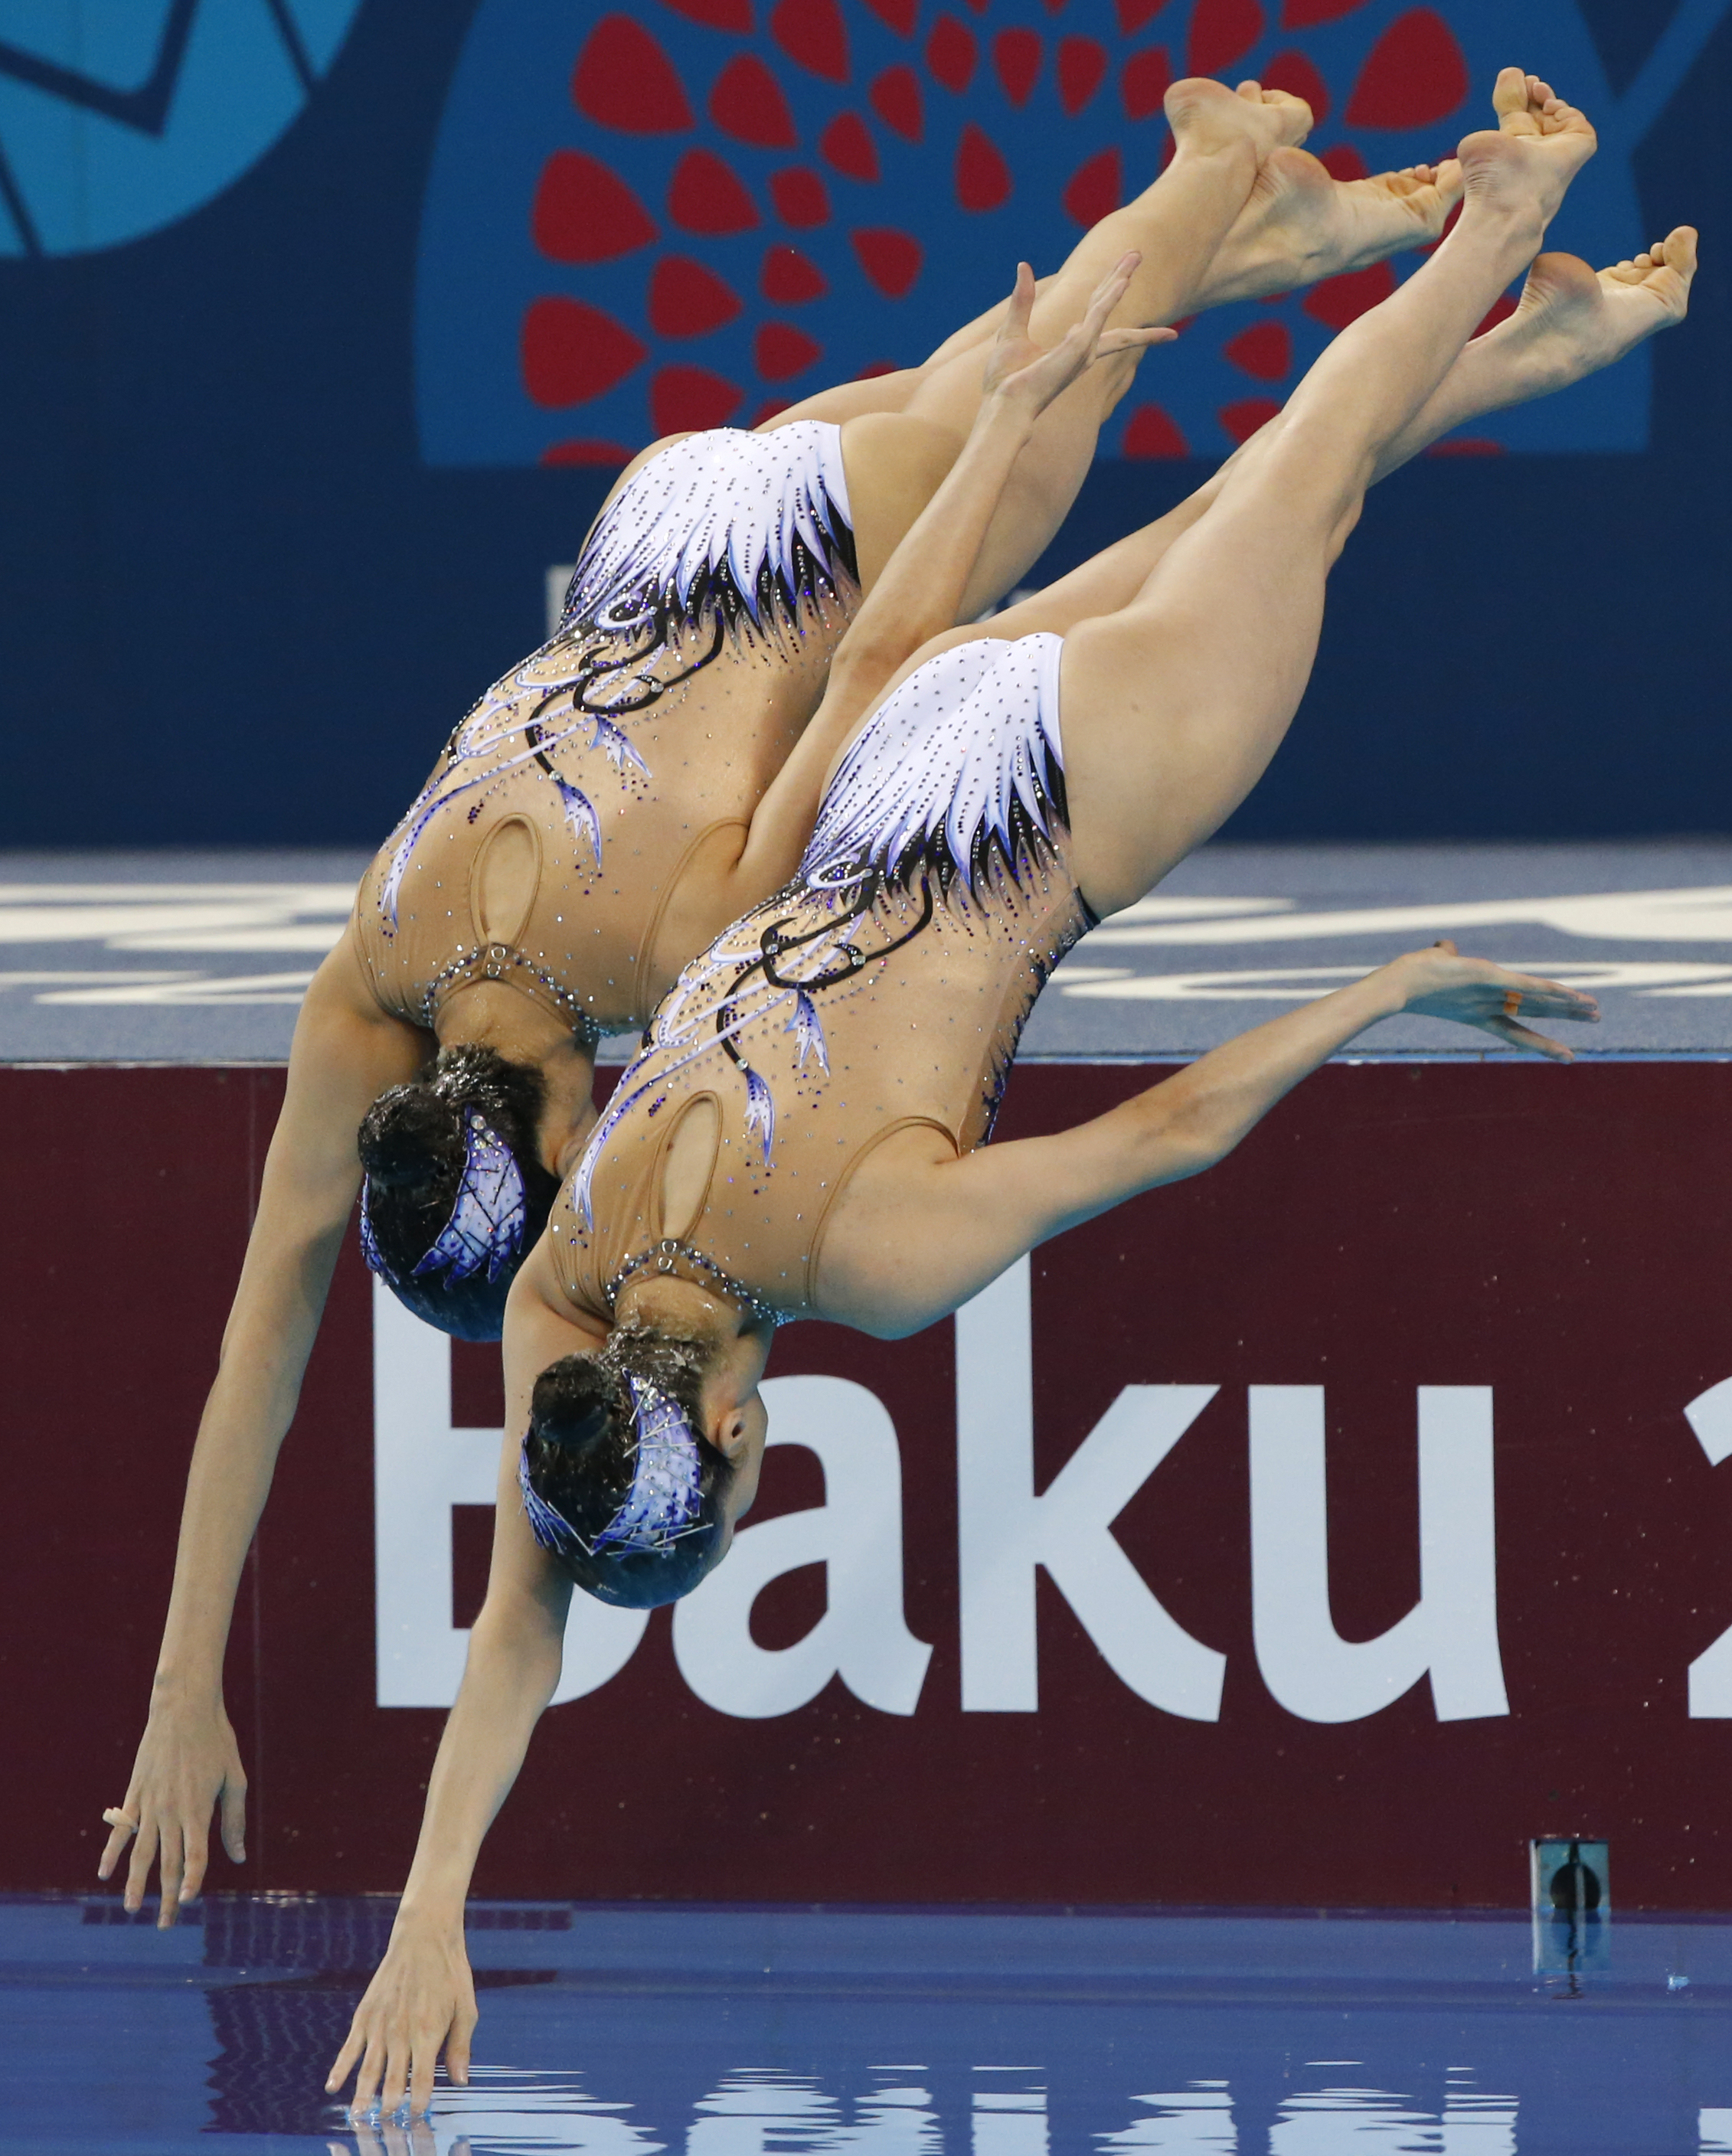 Anna-Maria and Eirini-Marina Alexandri of Austria perform during the final of synchronised swimming, duets event at the 2015 European Games in Baku, Azerbaijan, Monday, June 15, 2015. (AP Photo/Dmitry Lovetsky)